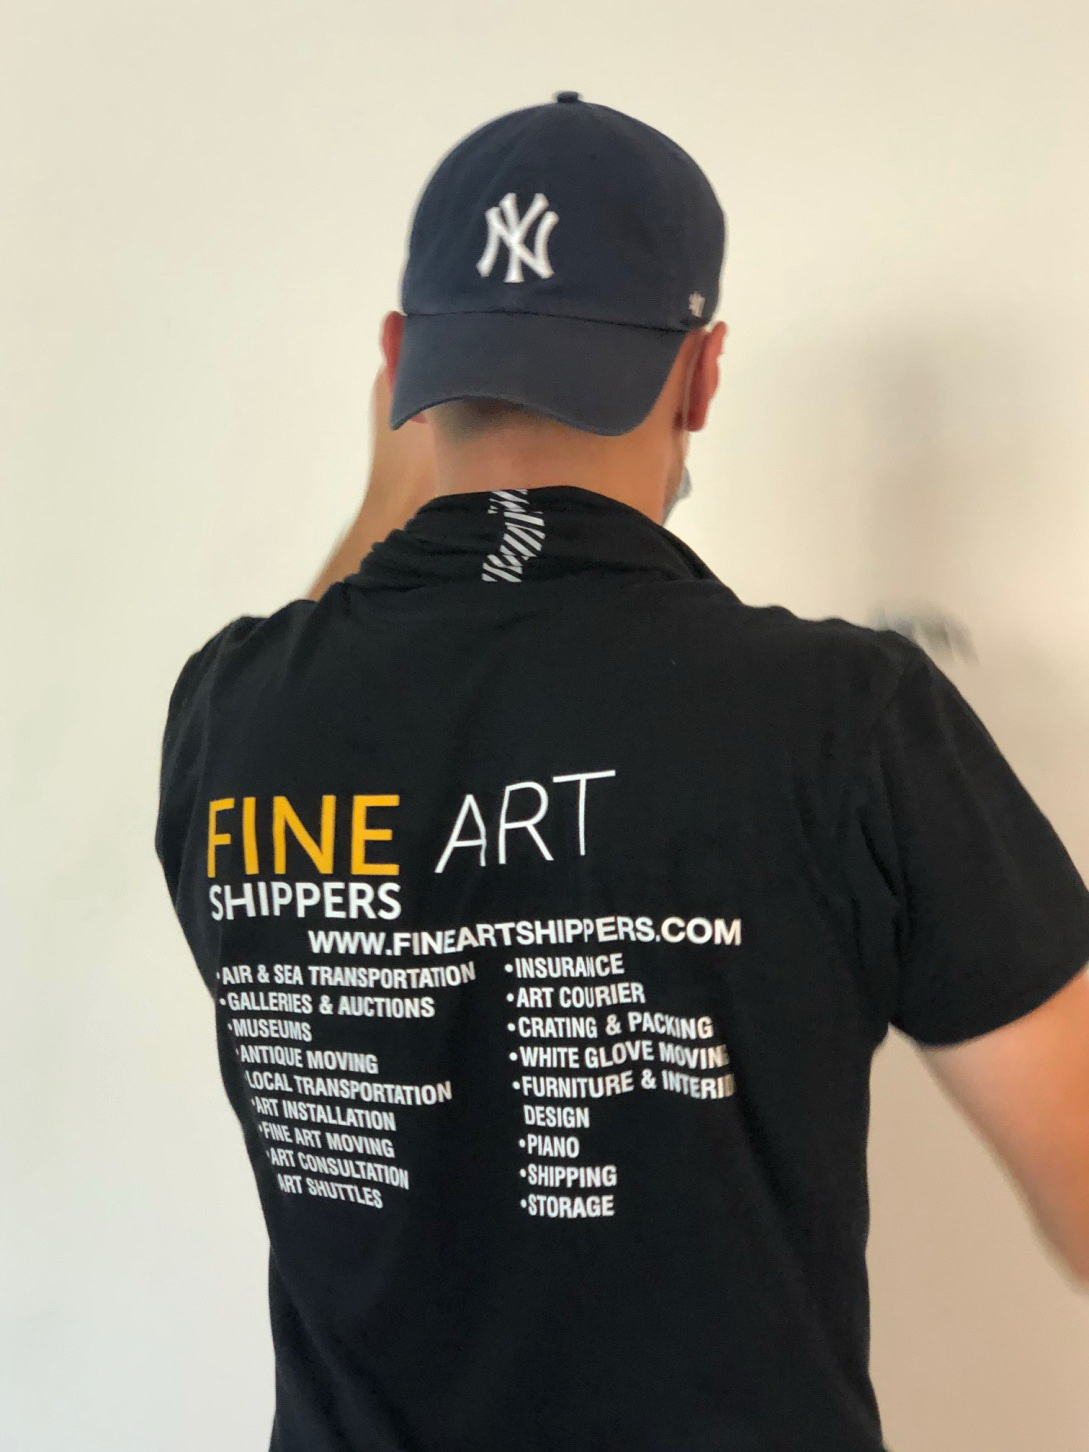 Art handling and art shipping services